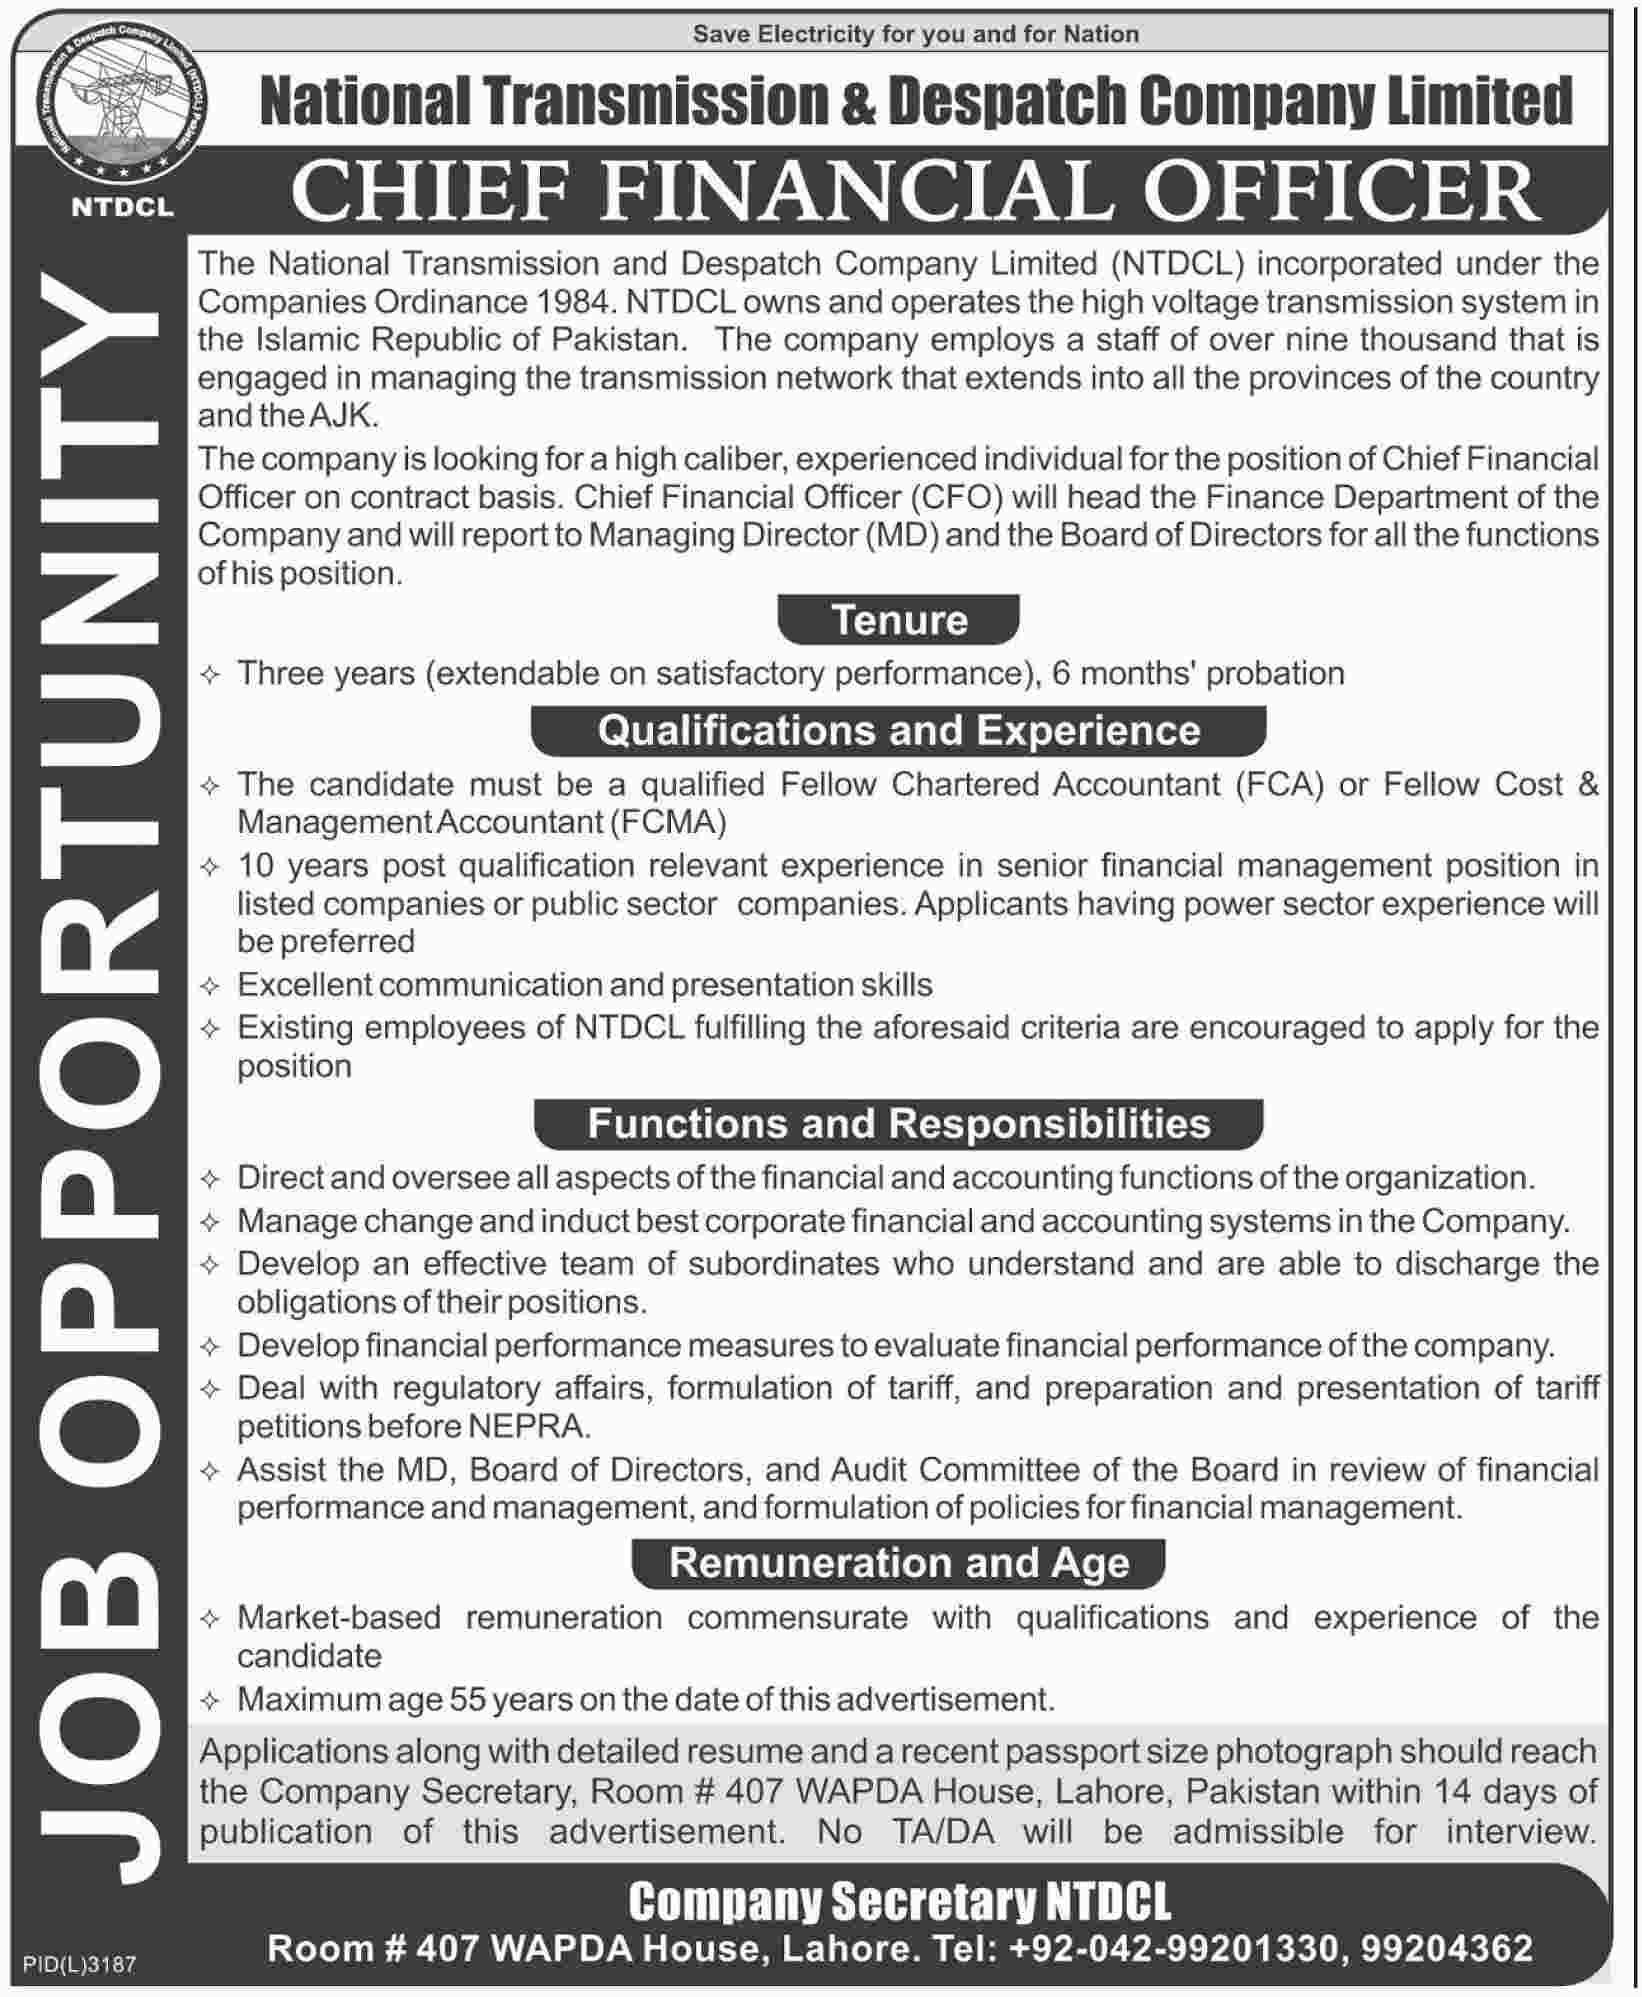 Chief financial officer jobs at national transmission despatch company limited ntdcl - Chief financial officer cfo ...